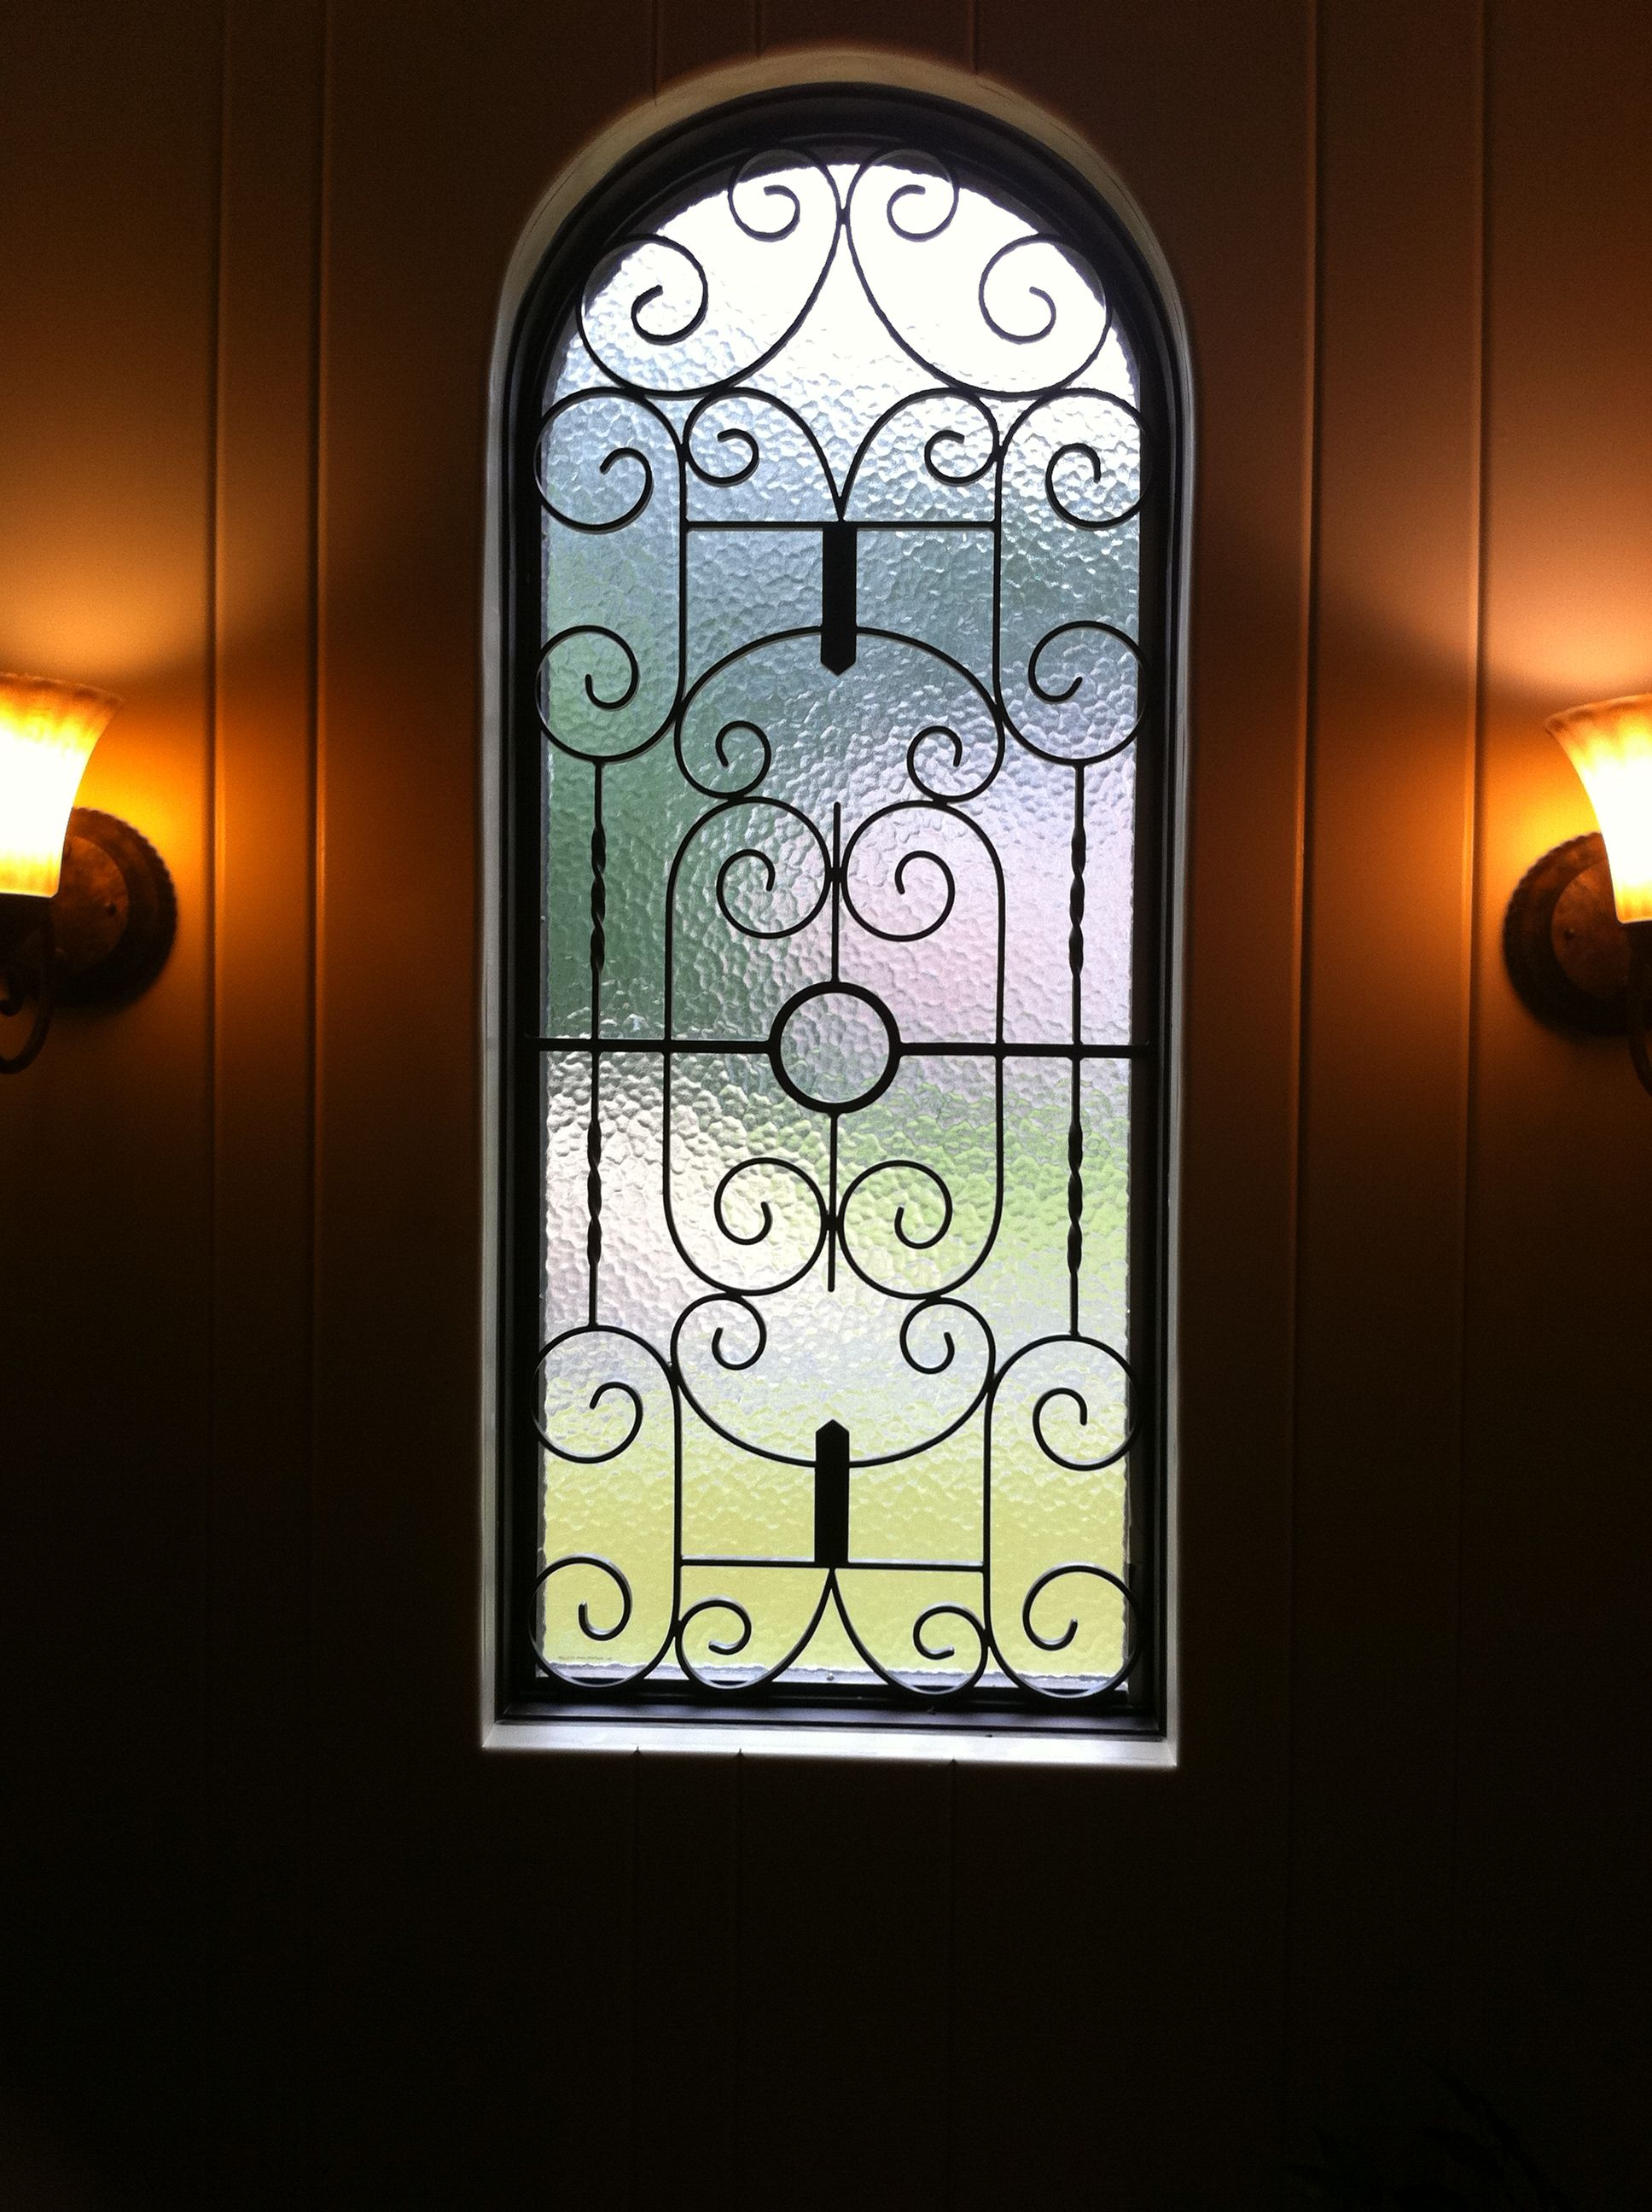 Grill pattern door grill design patterns manufacturer from new delhi - Wrought Iron Window Grill